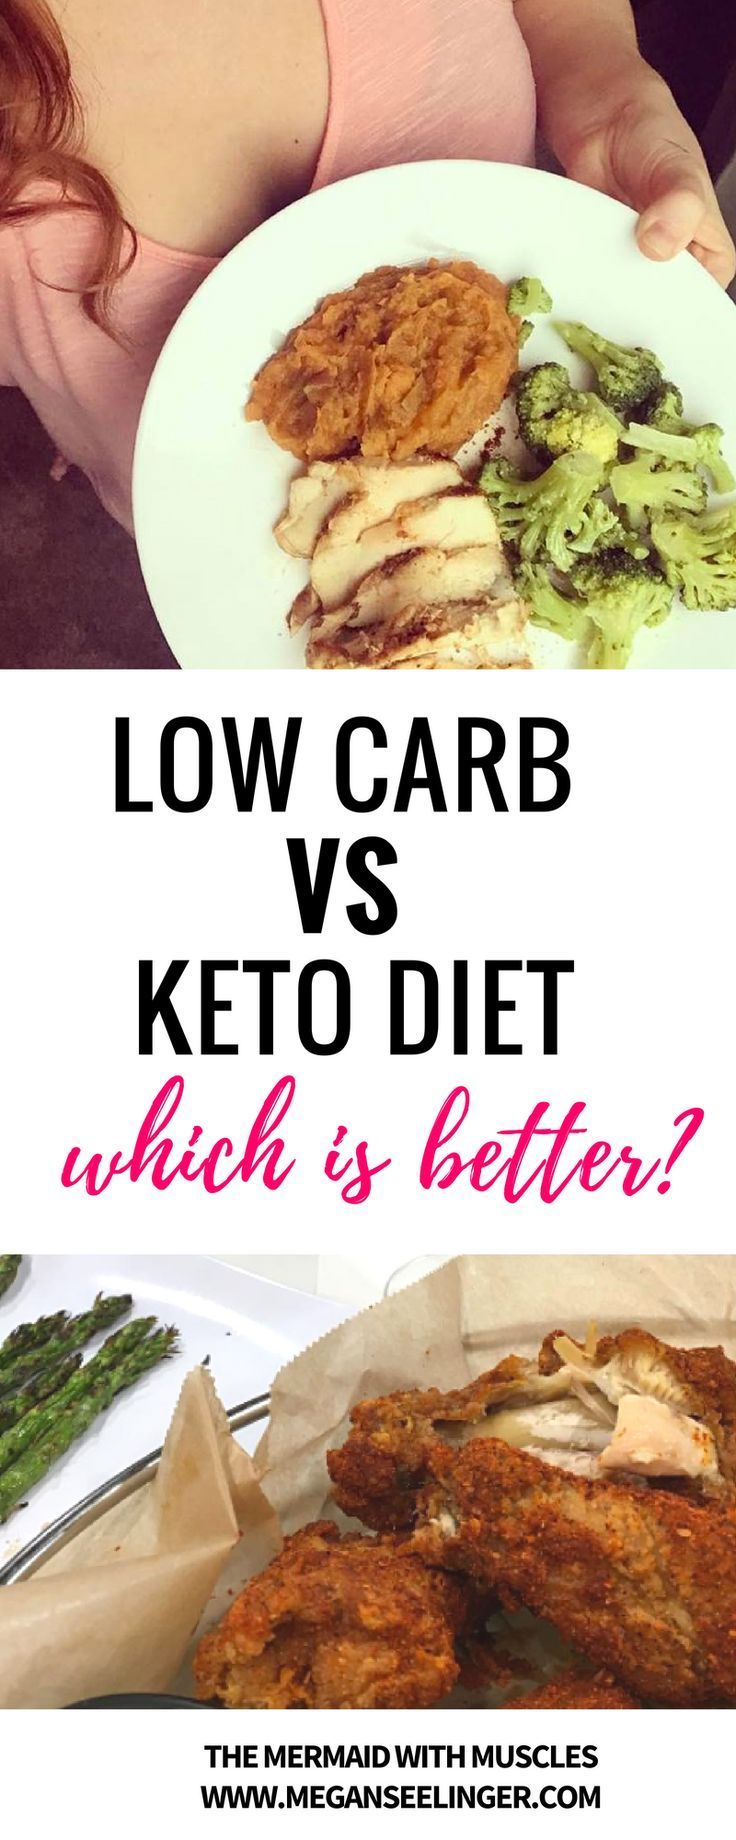 The 1 Reason Your Low Carb Diet Is Failing Megan Seelinger Coaching Keto Vs Low Carb Carbohydrates Food List Keto Diet